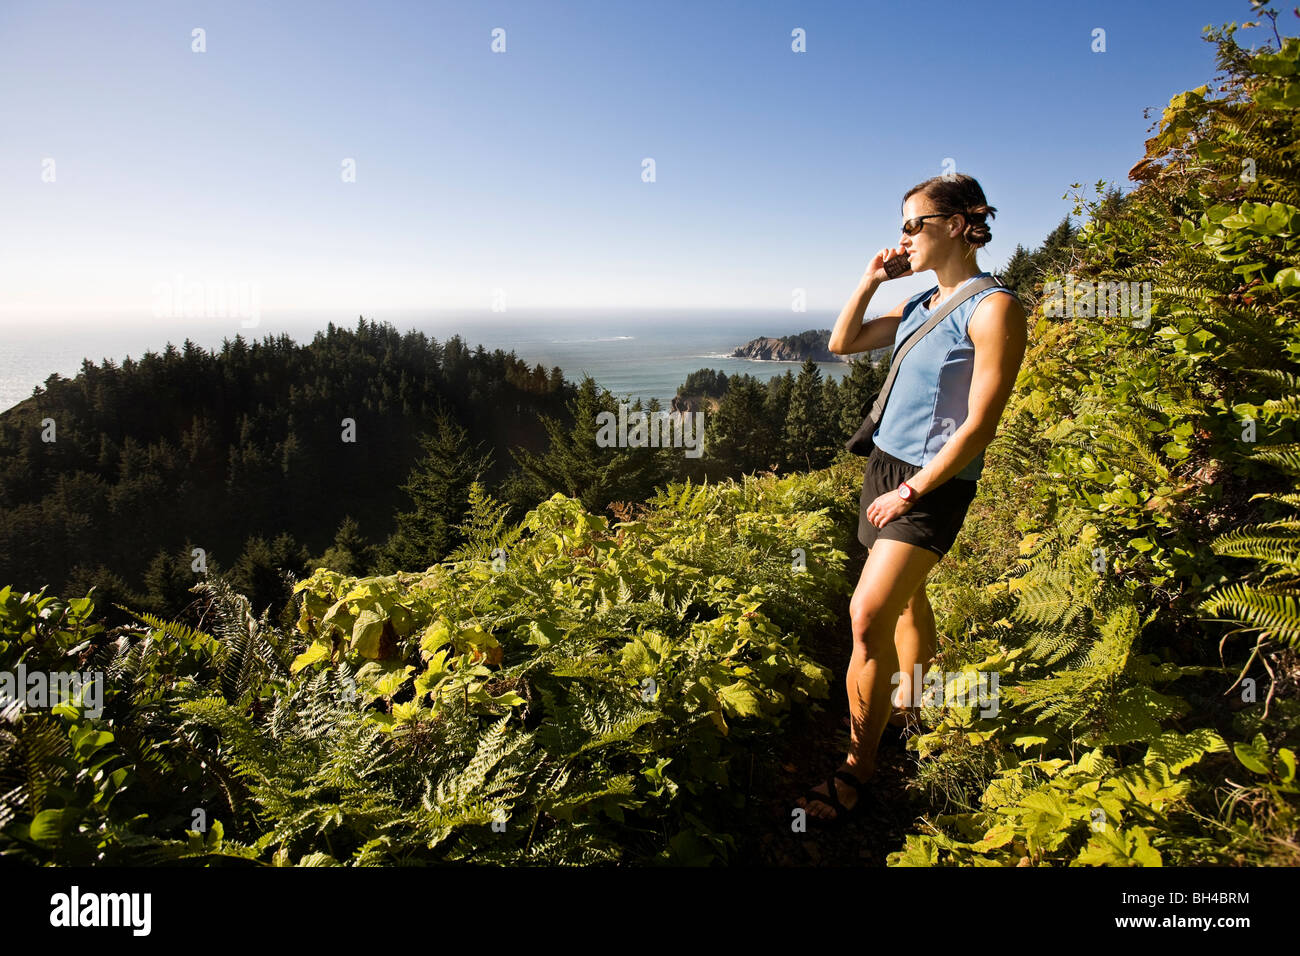 A woman with sunglasses and summer clothes hikes a coastal trail in northwest Oregon, and pauses to answer her cell - Stock Image